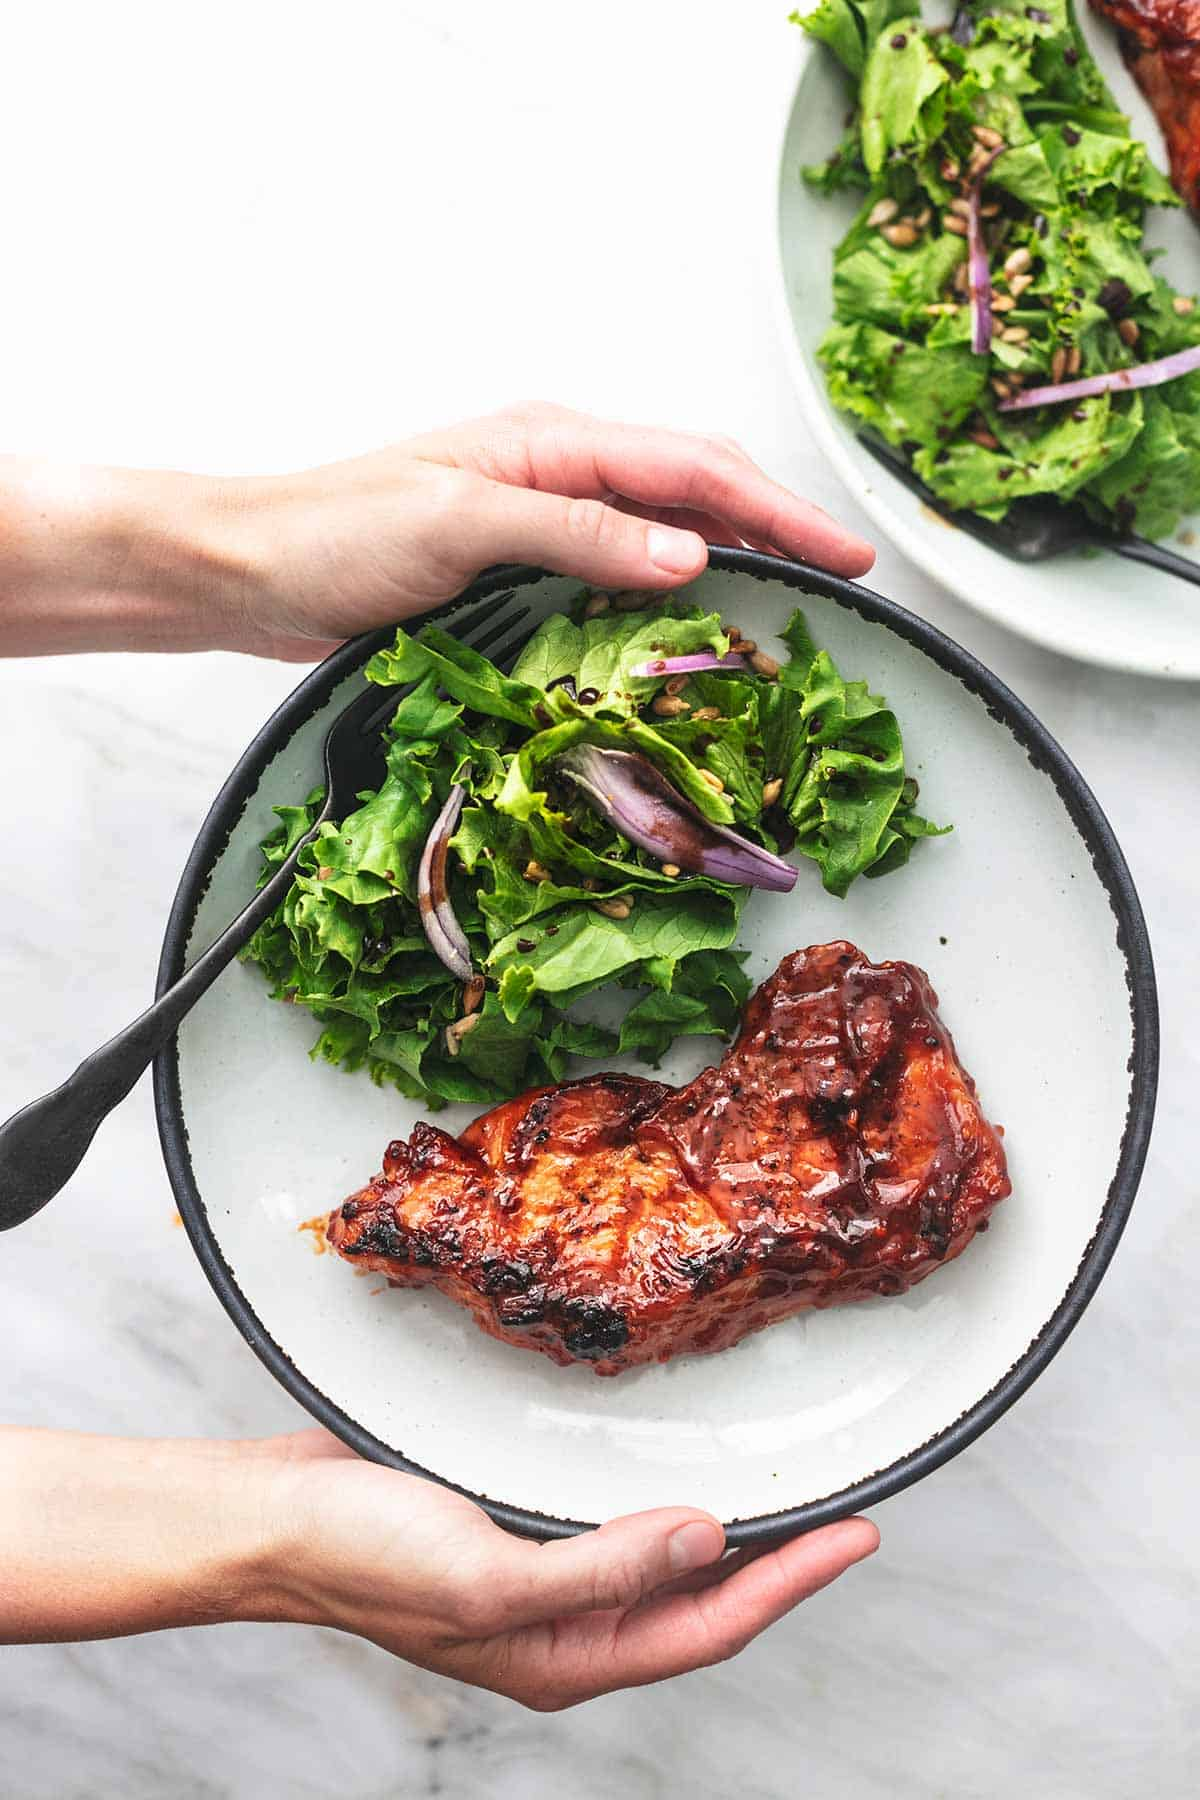 overhead view of hands holding plate with grilled bbq pork chop and lettuce